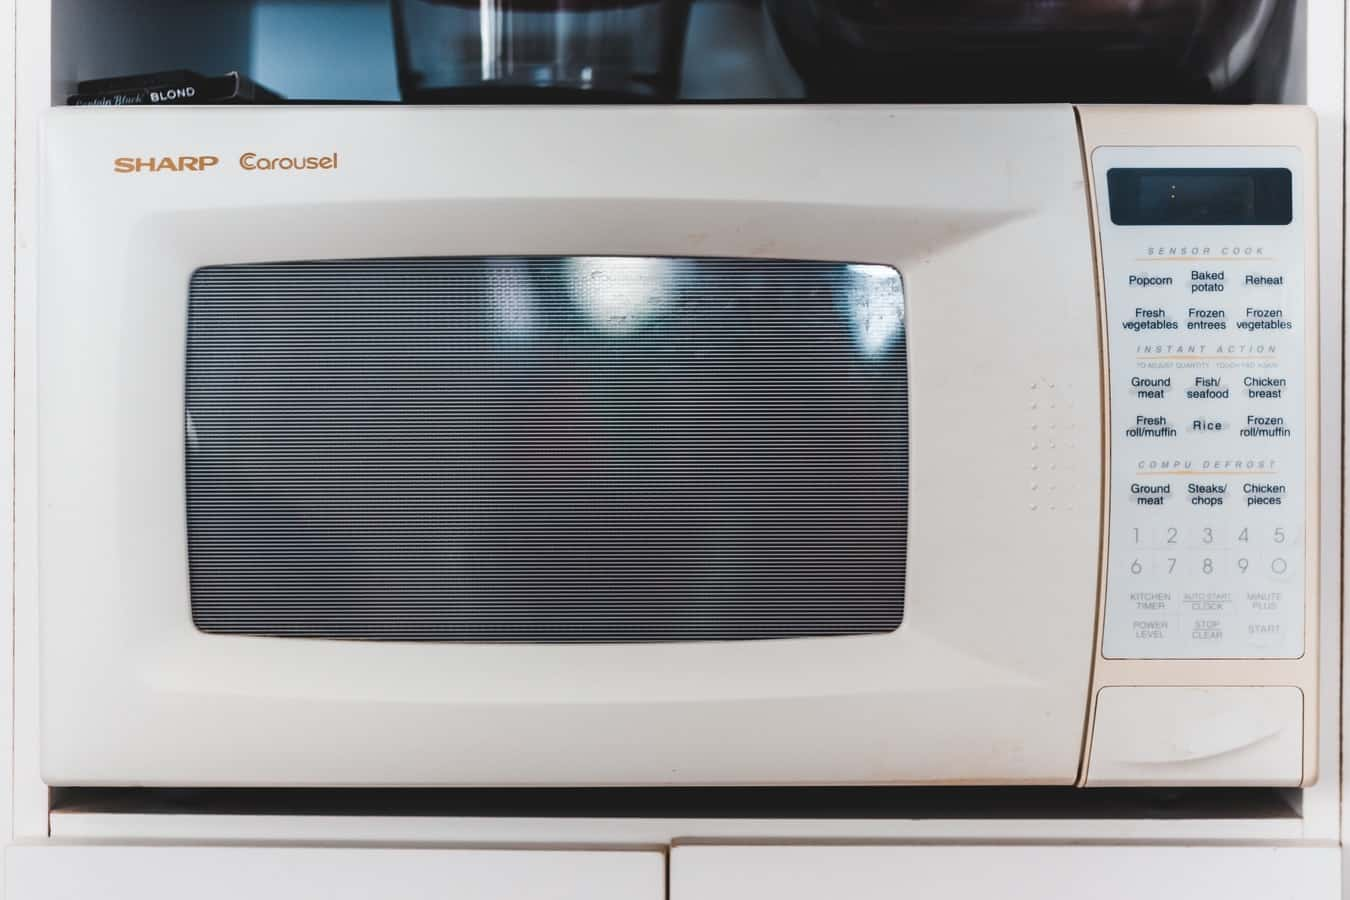 my microwave oven keeps tripping the